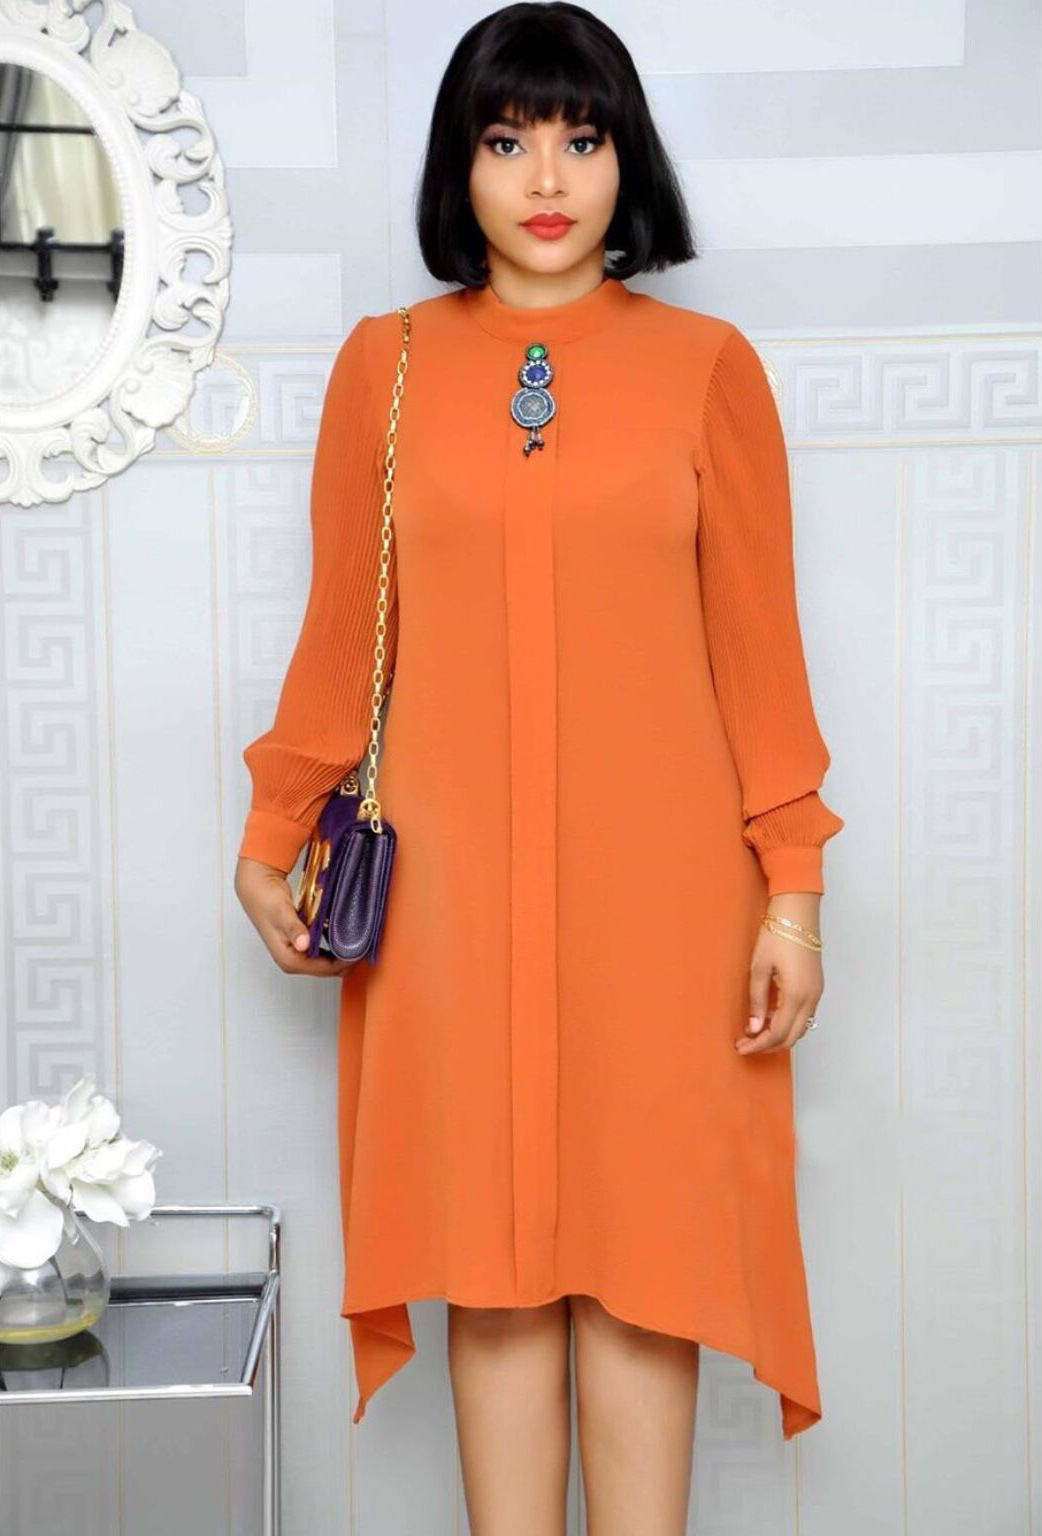 2019 New Arrival Autumn Elegent Fashion Style African Women Beauty Plus Size Dress M-XXL